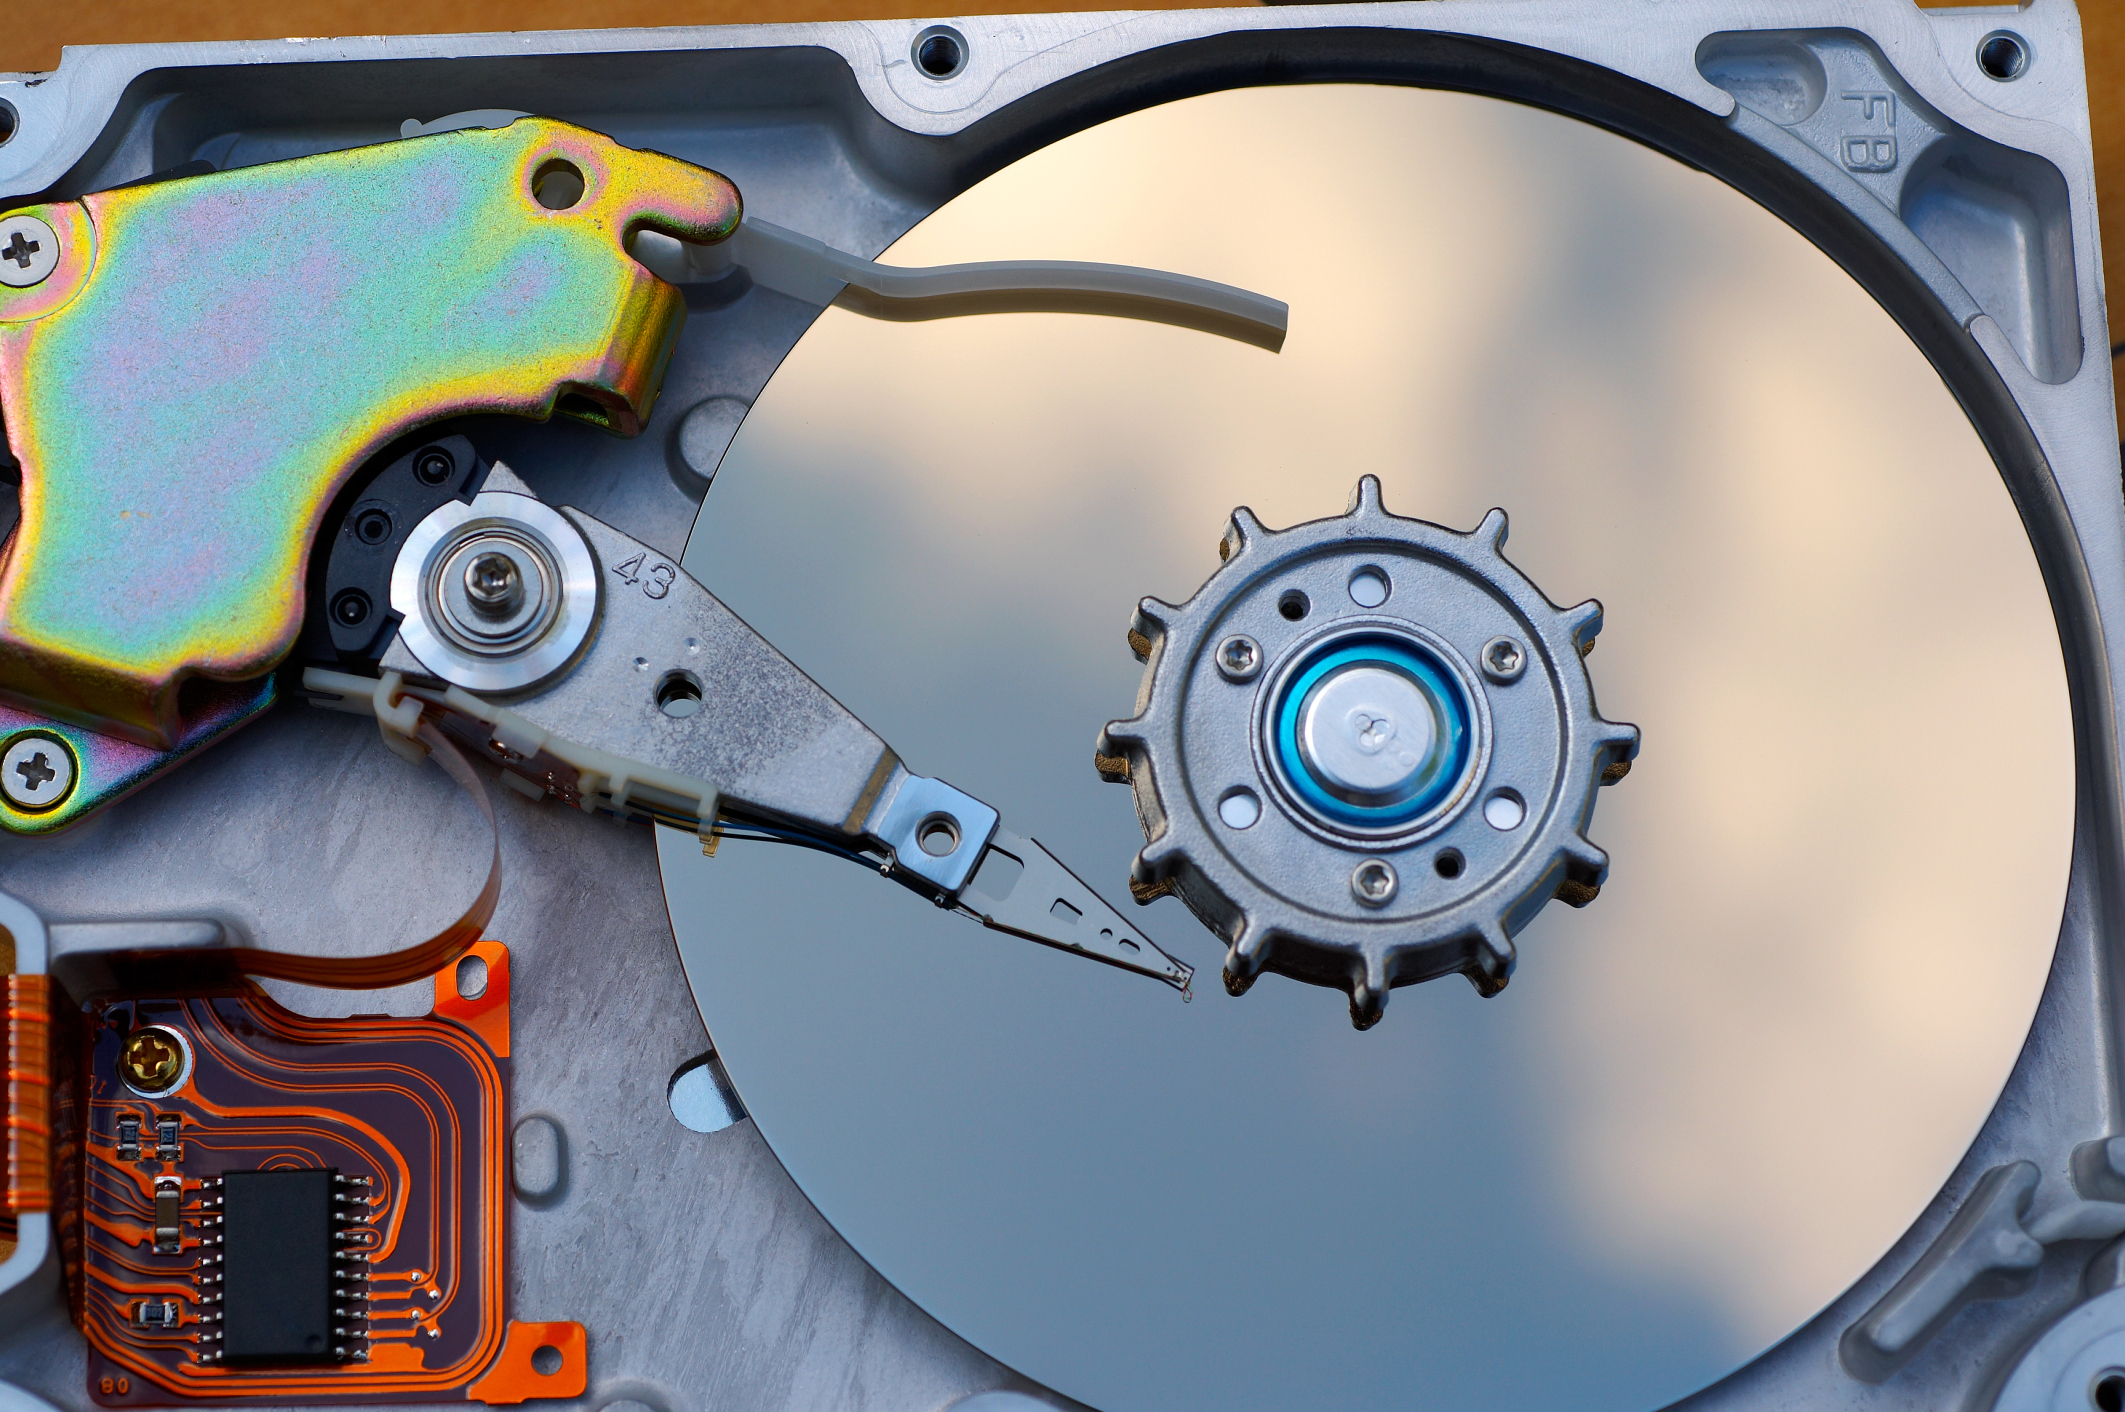 How to Change Jumper Settings on a Hard Drive   It Still Works